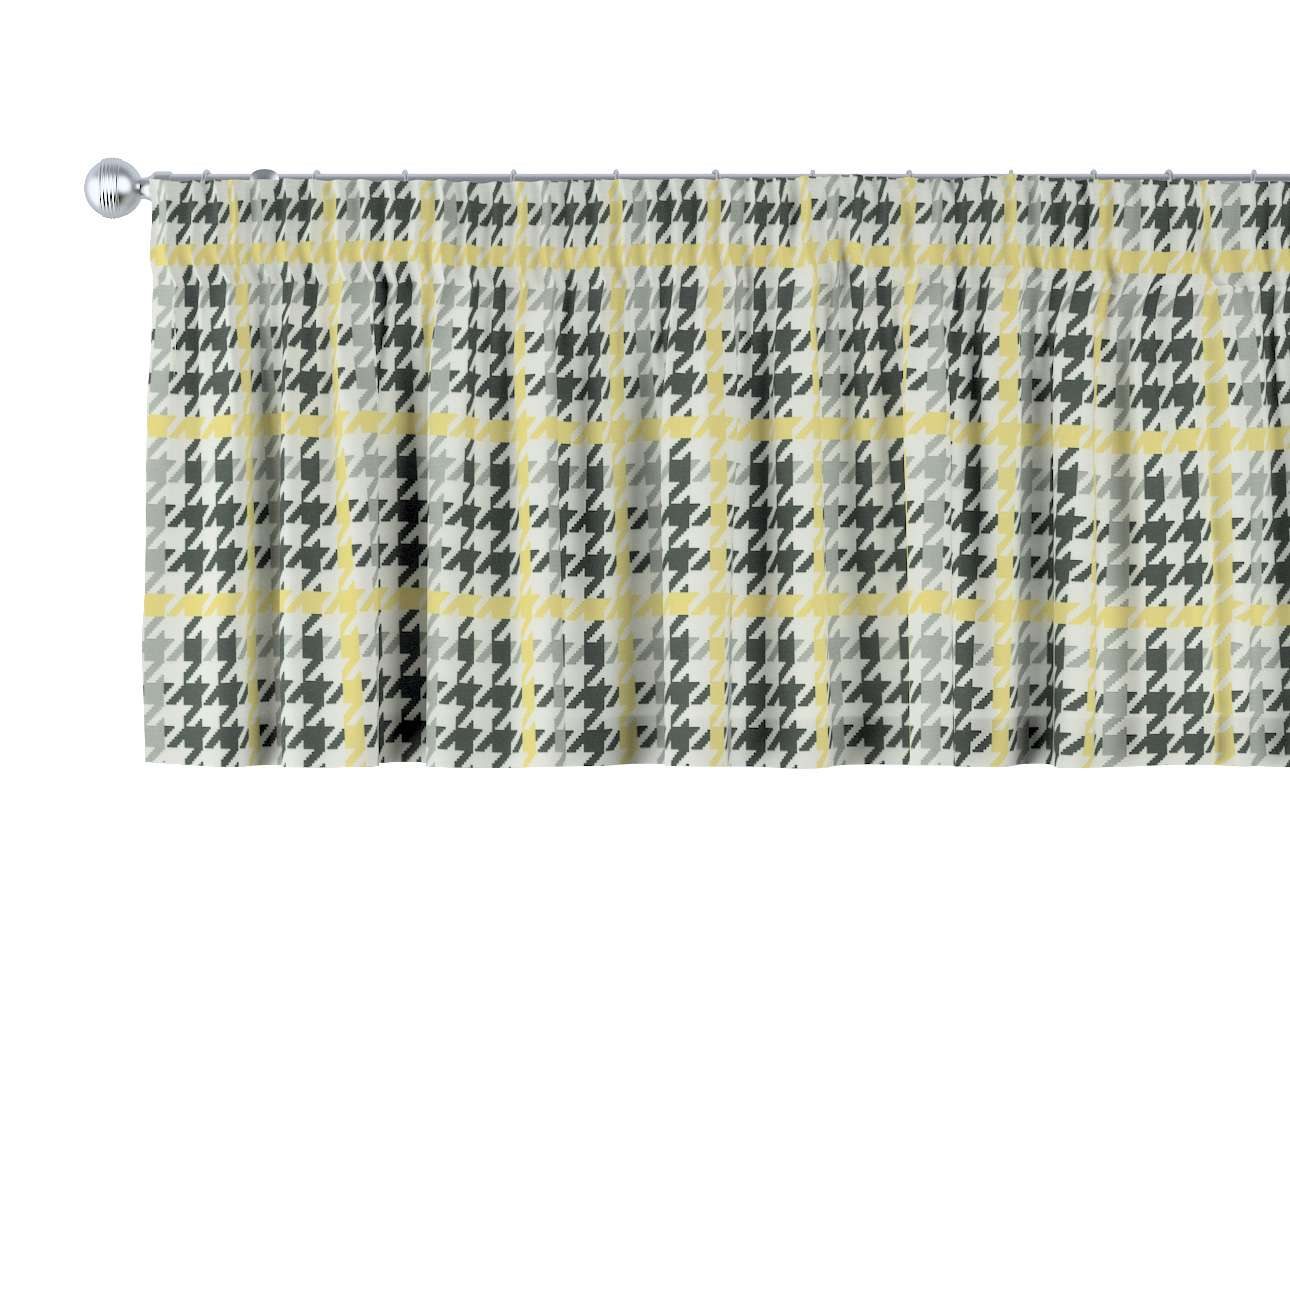 Pencil pleat pelmet 130 × 40 cm (51 × 16 inch) in collection Brooklyn, fabric: 137-79